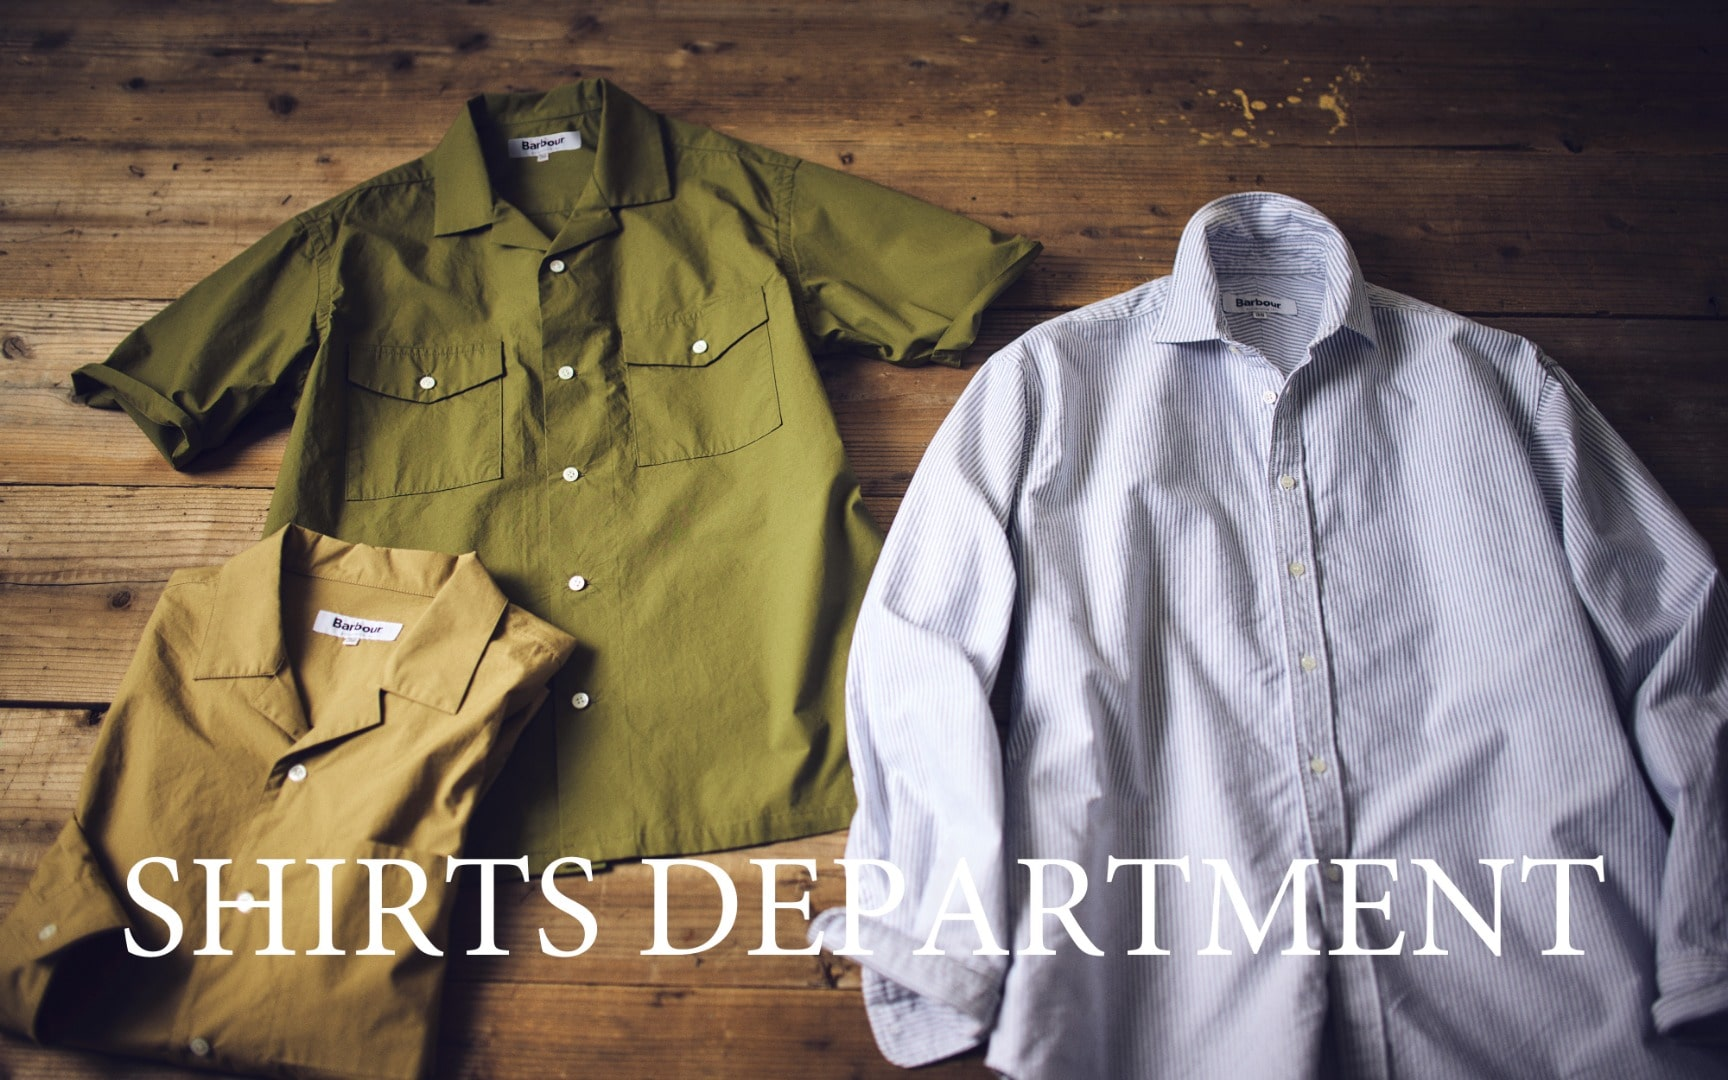 SHIRTS DEPARTMENT